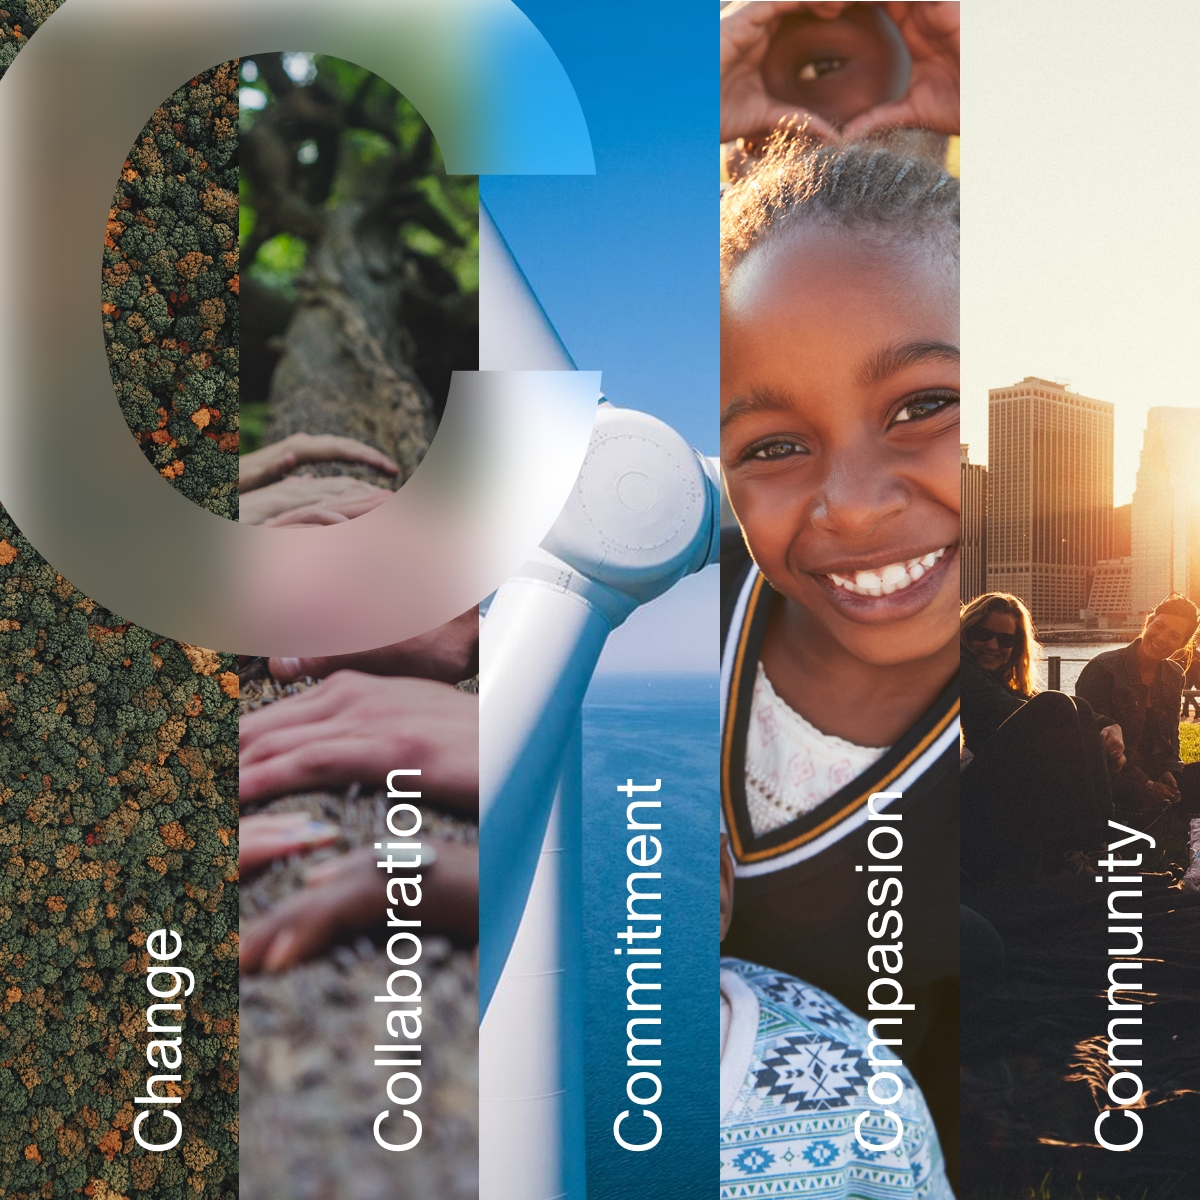 """Project C banner image reading """"Change, Collaboration, Commitment, Compassion, Community"""""""